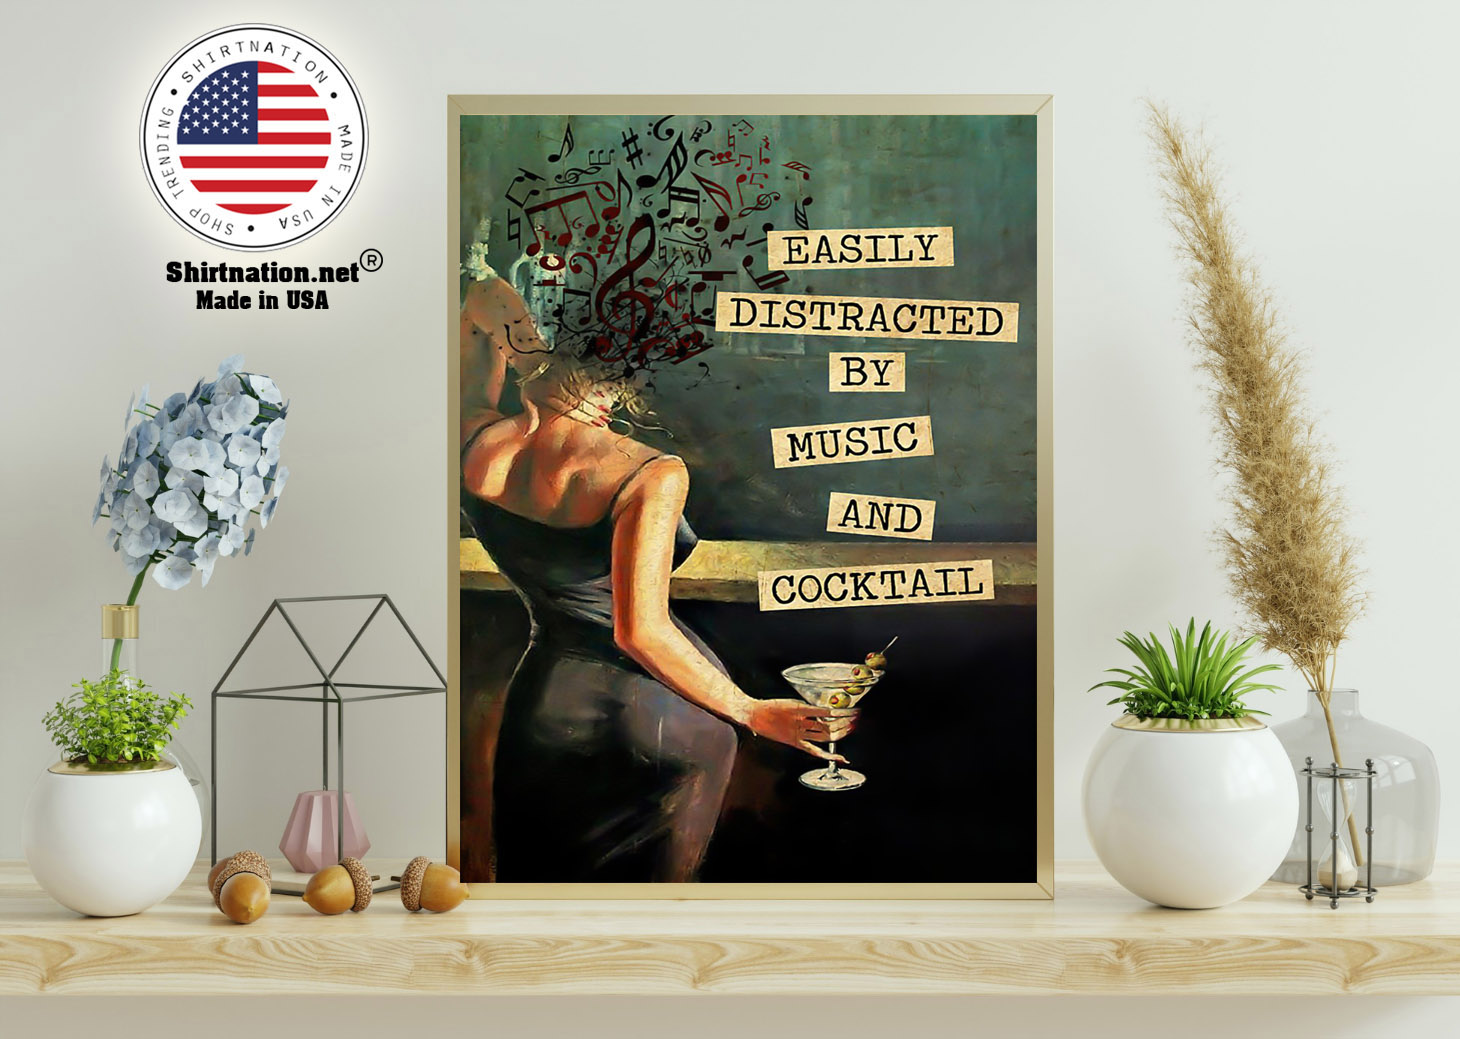 Easily distracted by music and cocktail poster 11